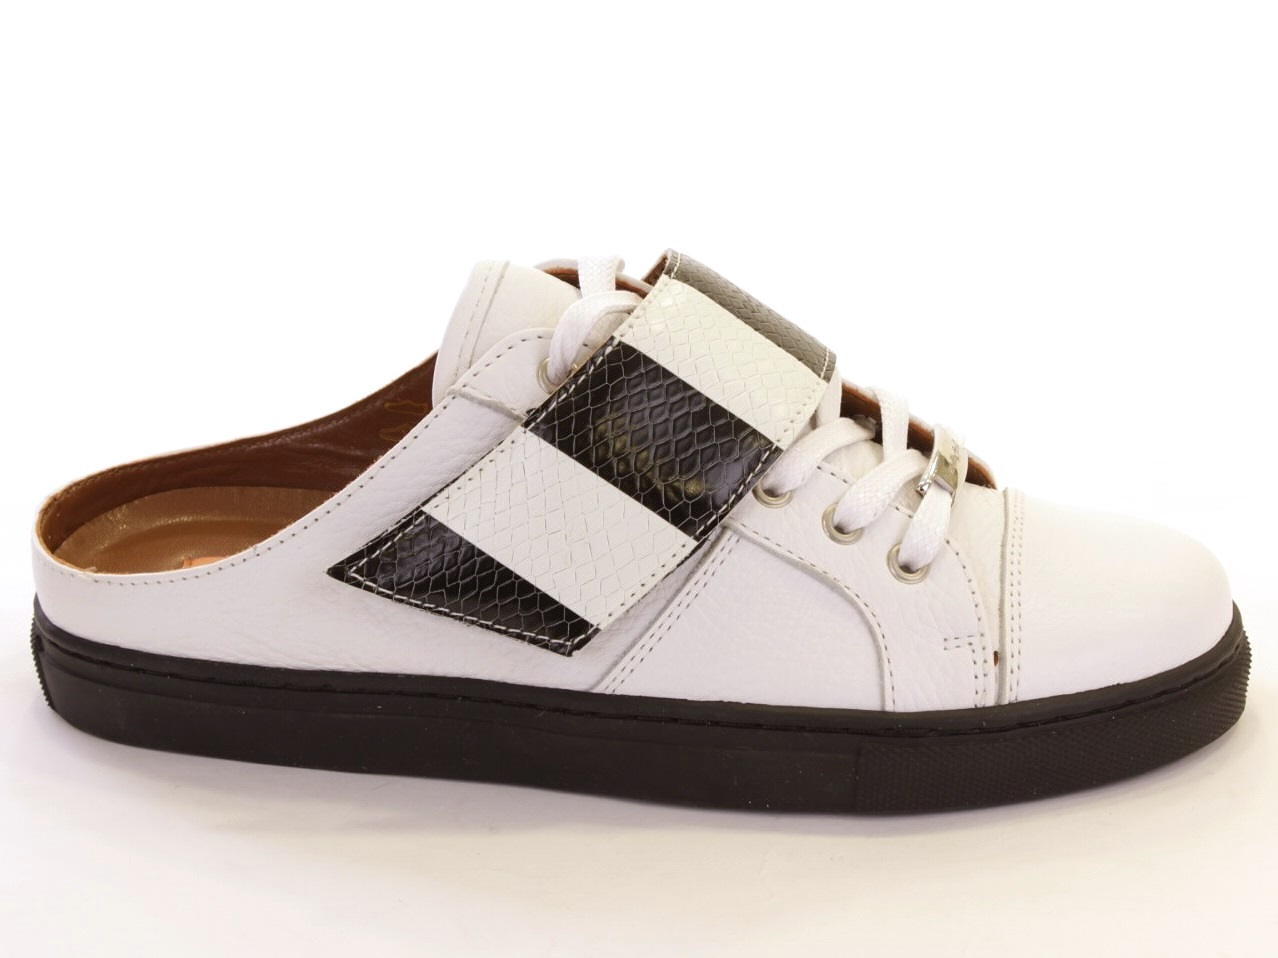 Sneakers and Espadrilles Friendly Fire - 648 GALA SA-GOL